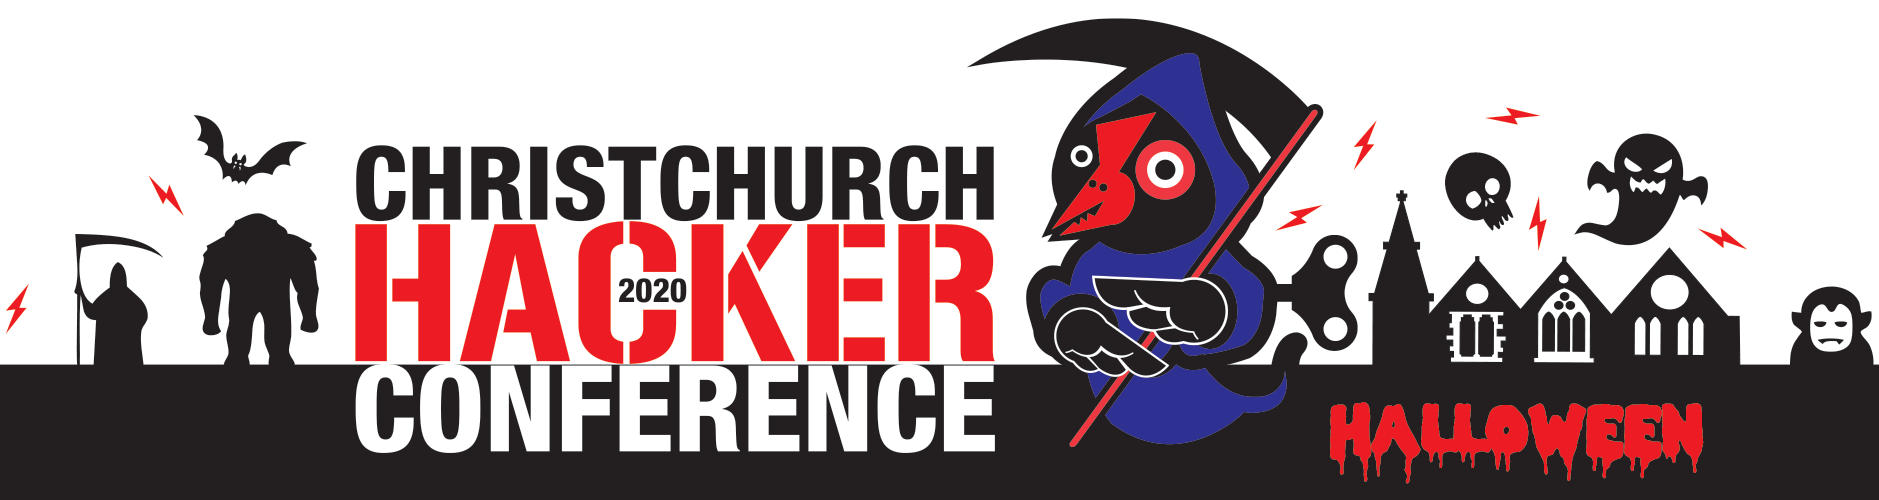 Christchurch Hacker Conference 2020